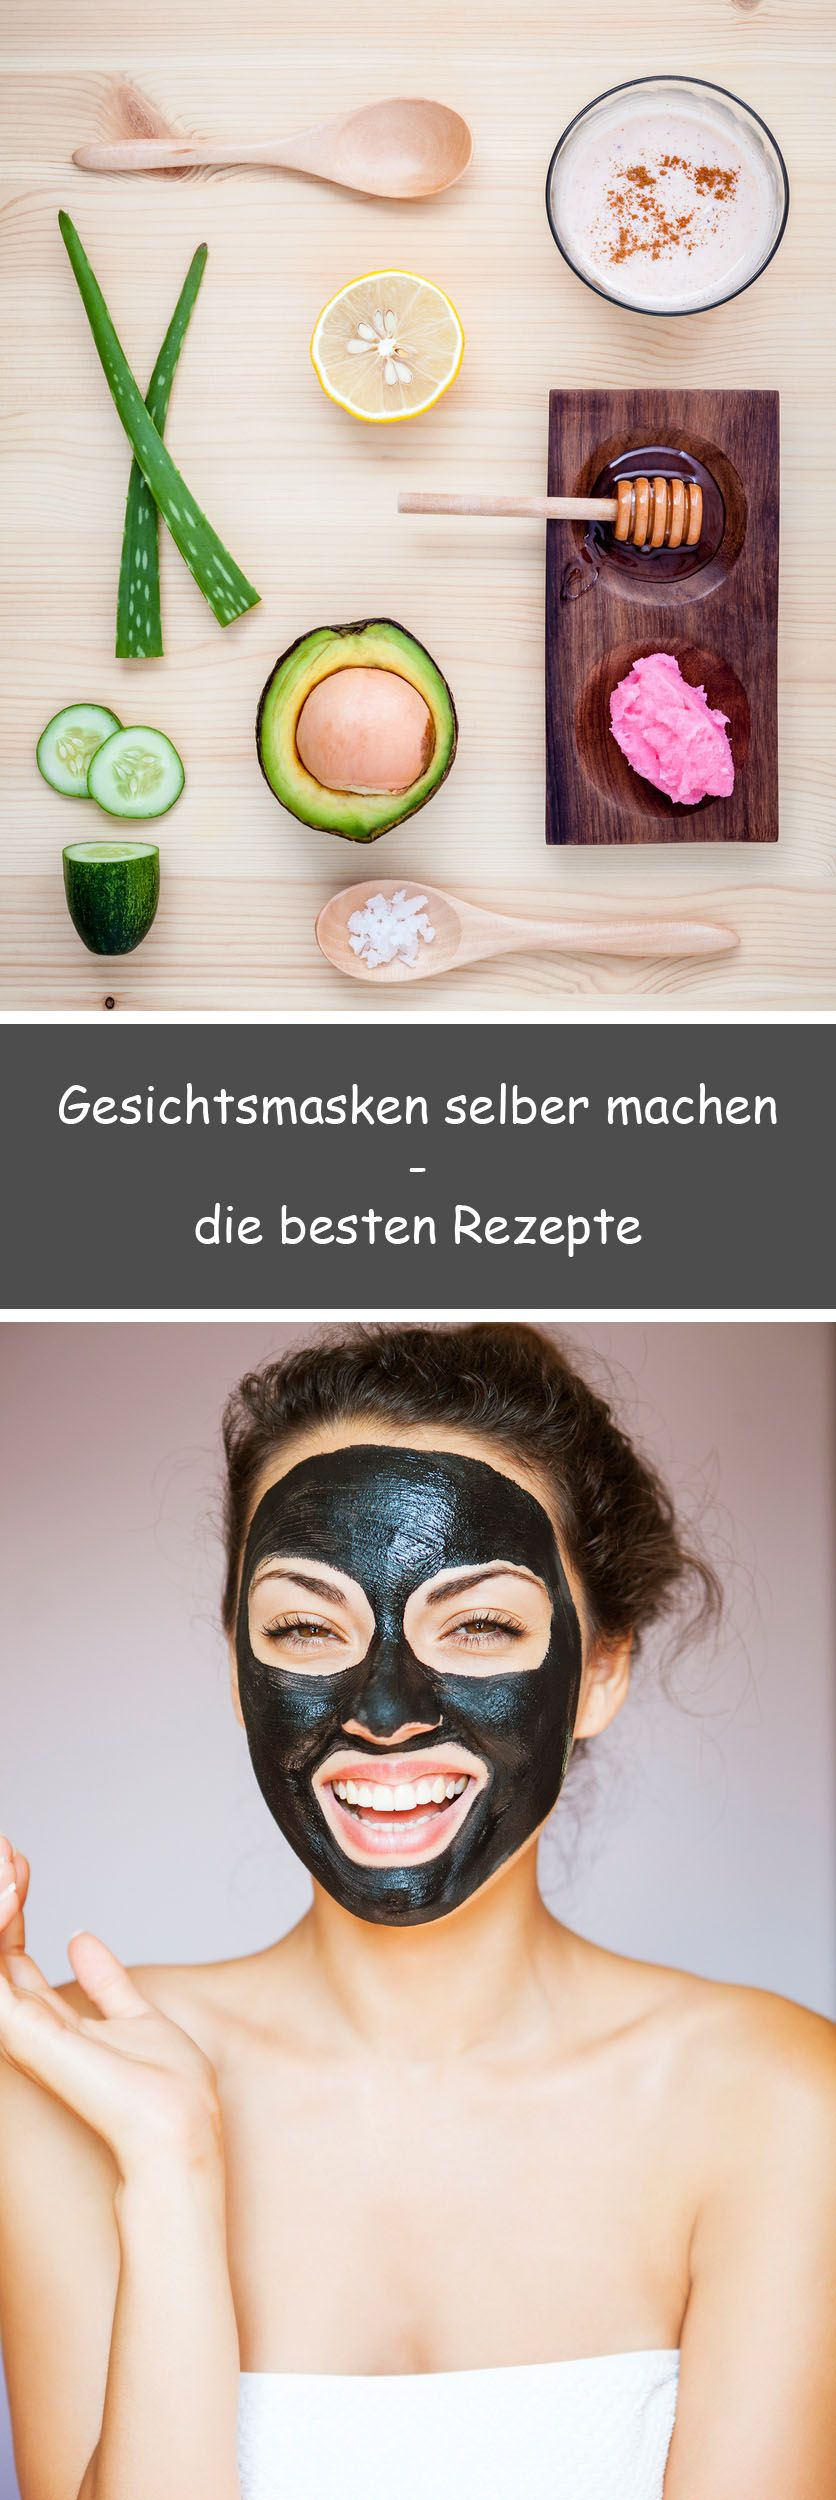 gesichtsmasken selber machen schnelle rezepte outfits pinterest trockene haut. Black Bedroom Furniture Sets. Home Design Ideas